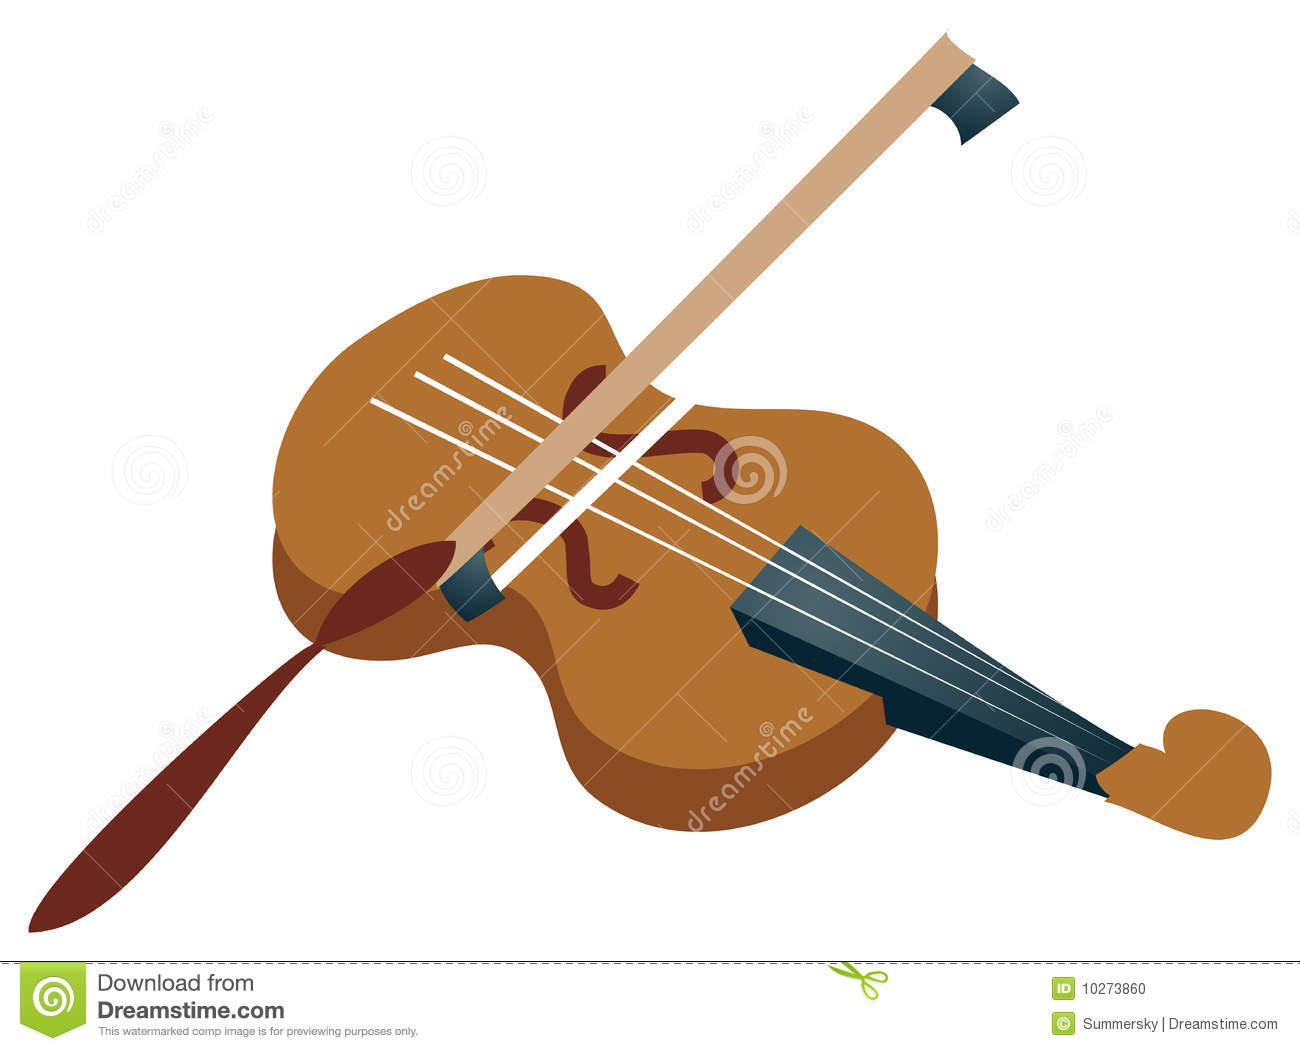 Cartoon Violin Images: Violin Stock Illustration. Illustration Of Opera